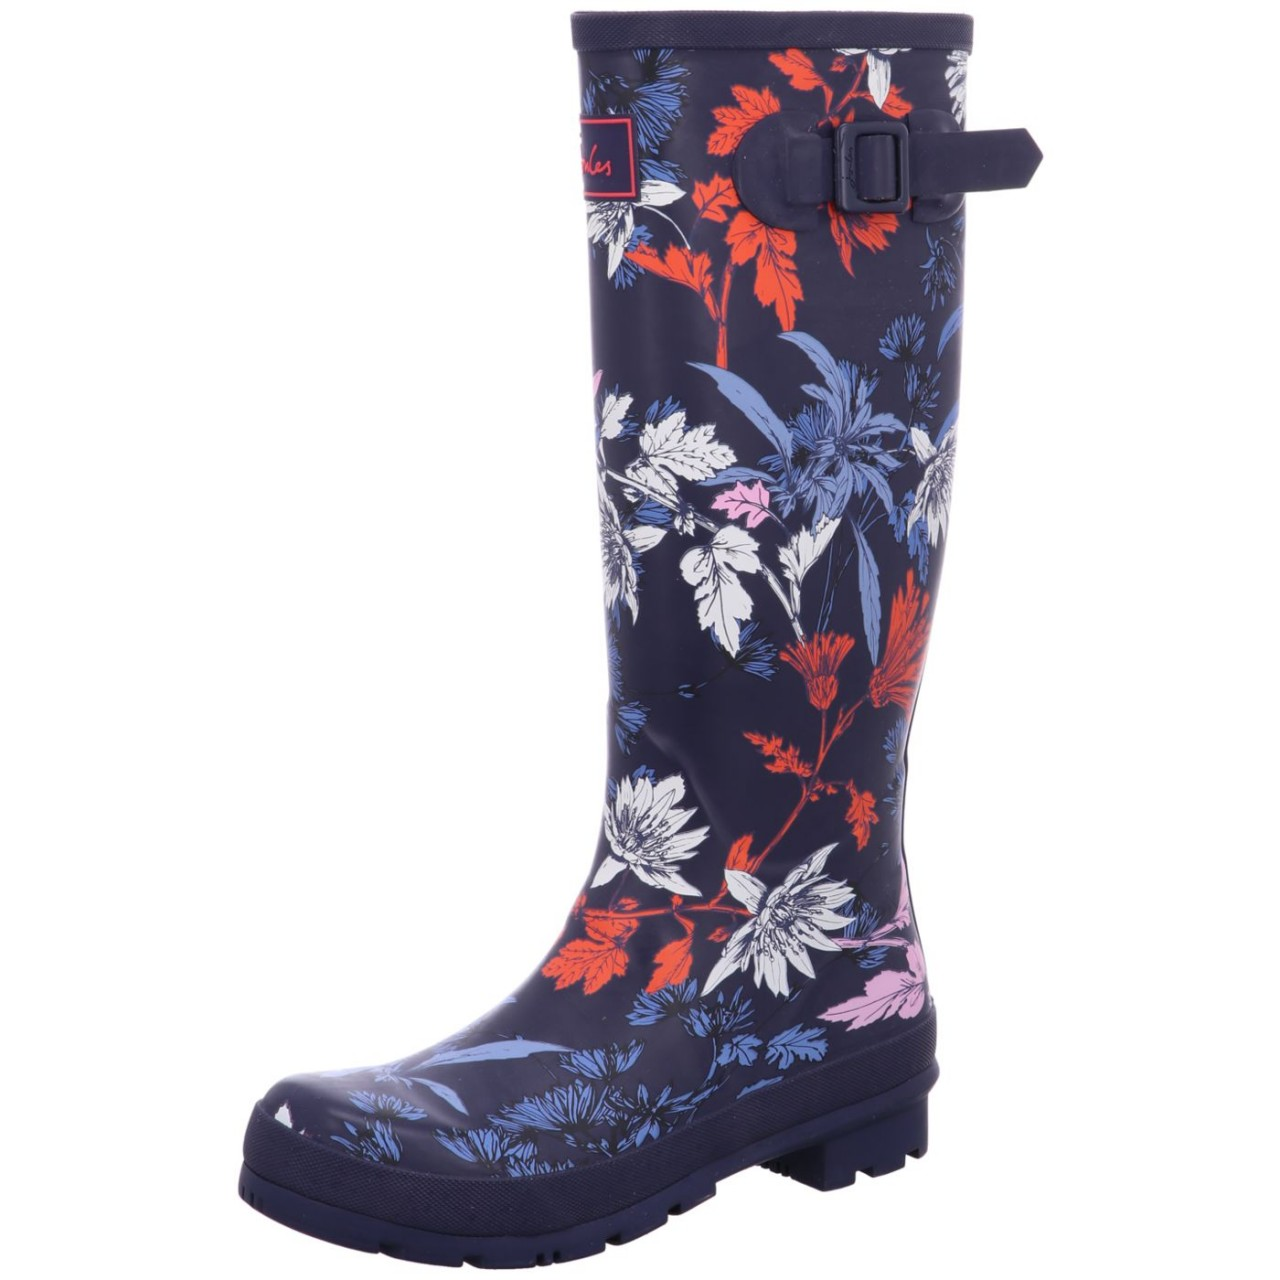 Joules Stiefel Welly High, Blumenprint french Blau Welly french navy fay floral